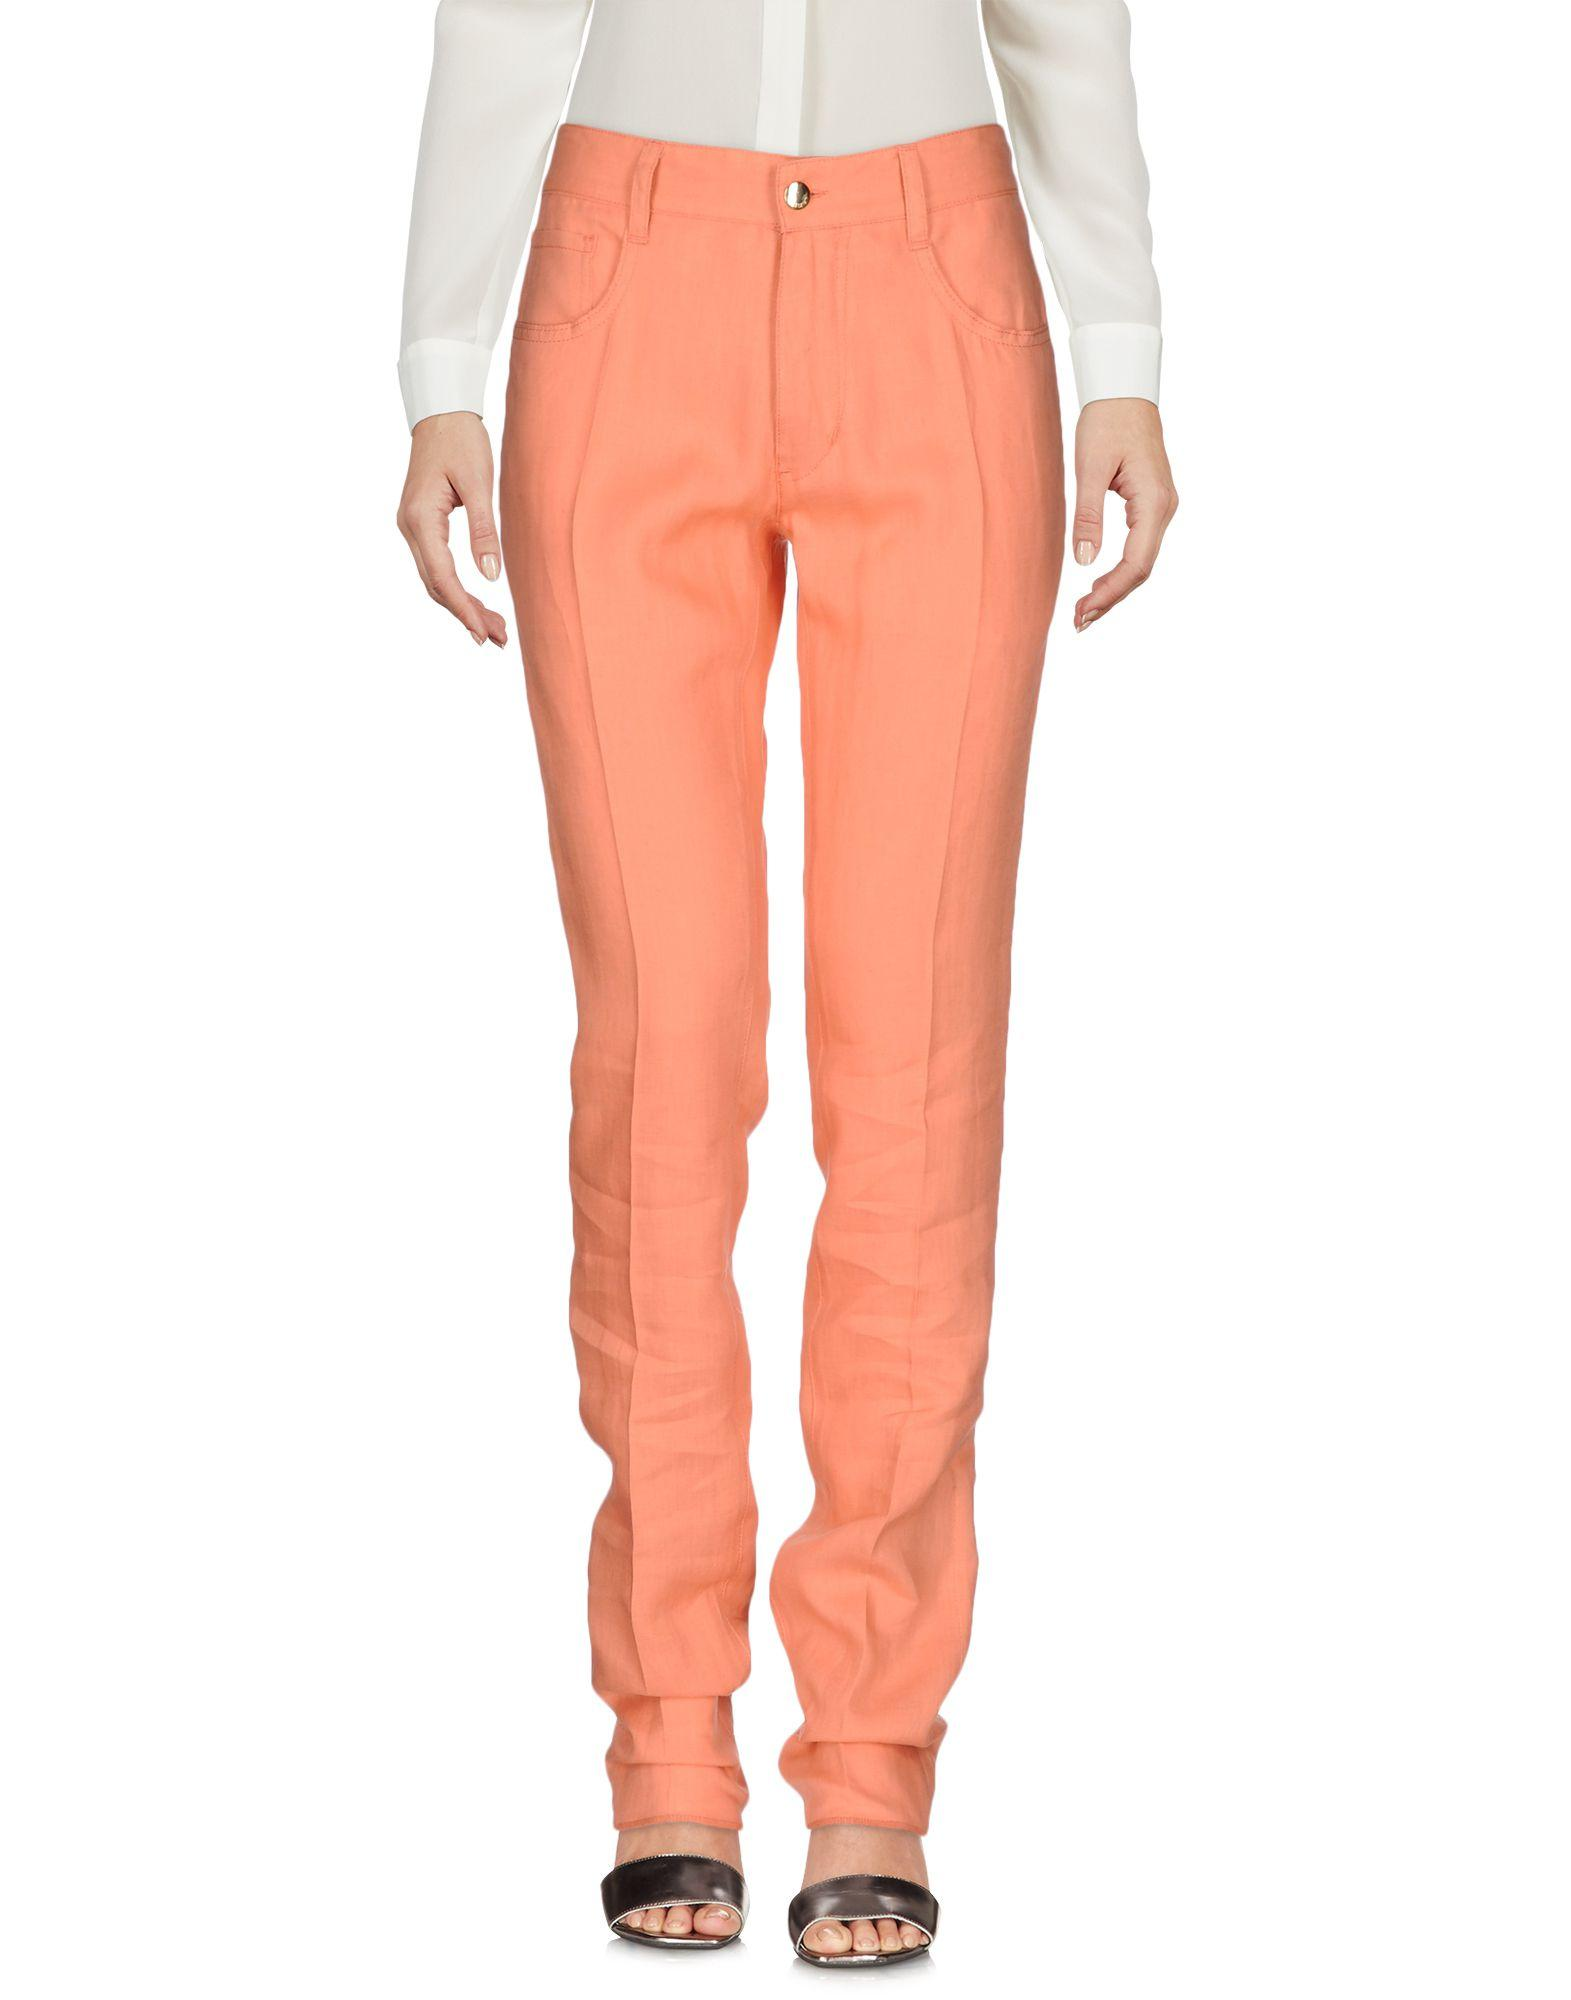 Cool Clinton Women39s Tomato Orange Ankle Pants  16646841  Overstockcom